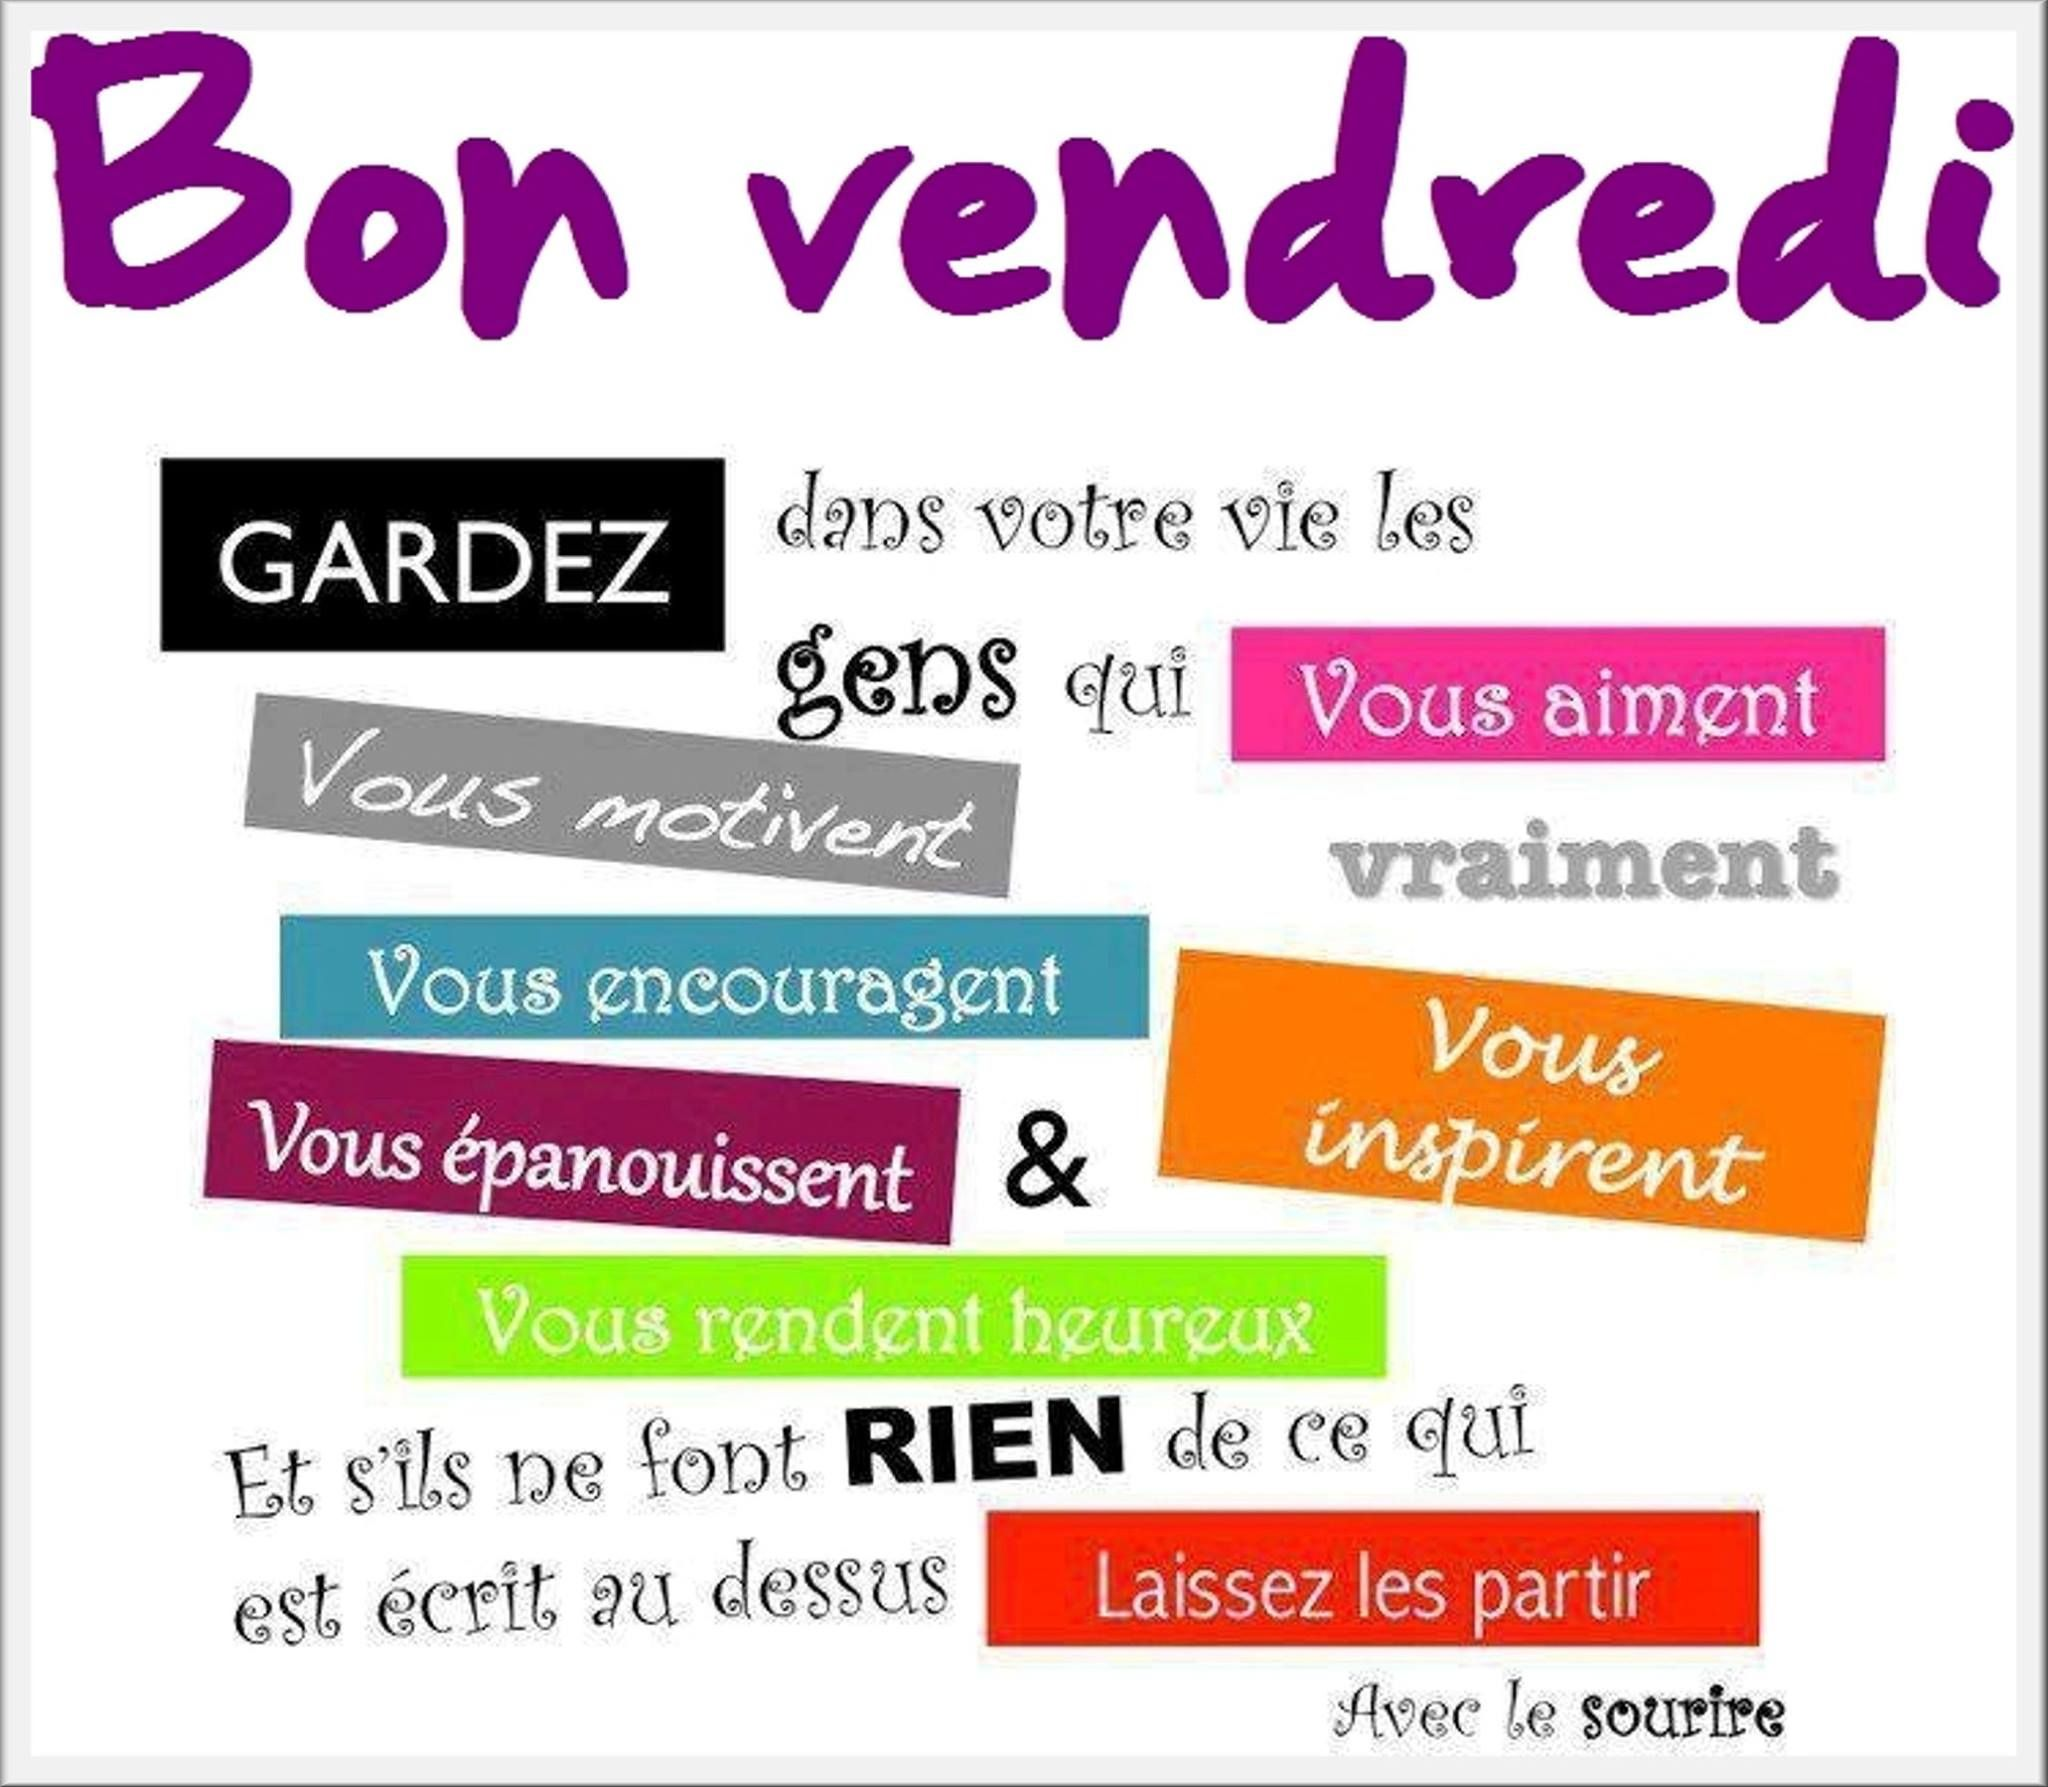 Bon Vendredi! https://www.facebook.com/MadeInHumanity?fref=ts